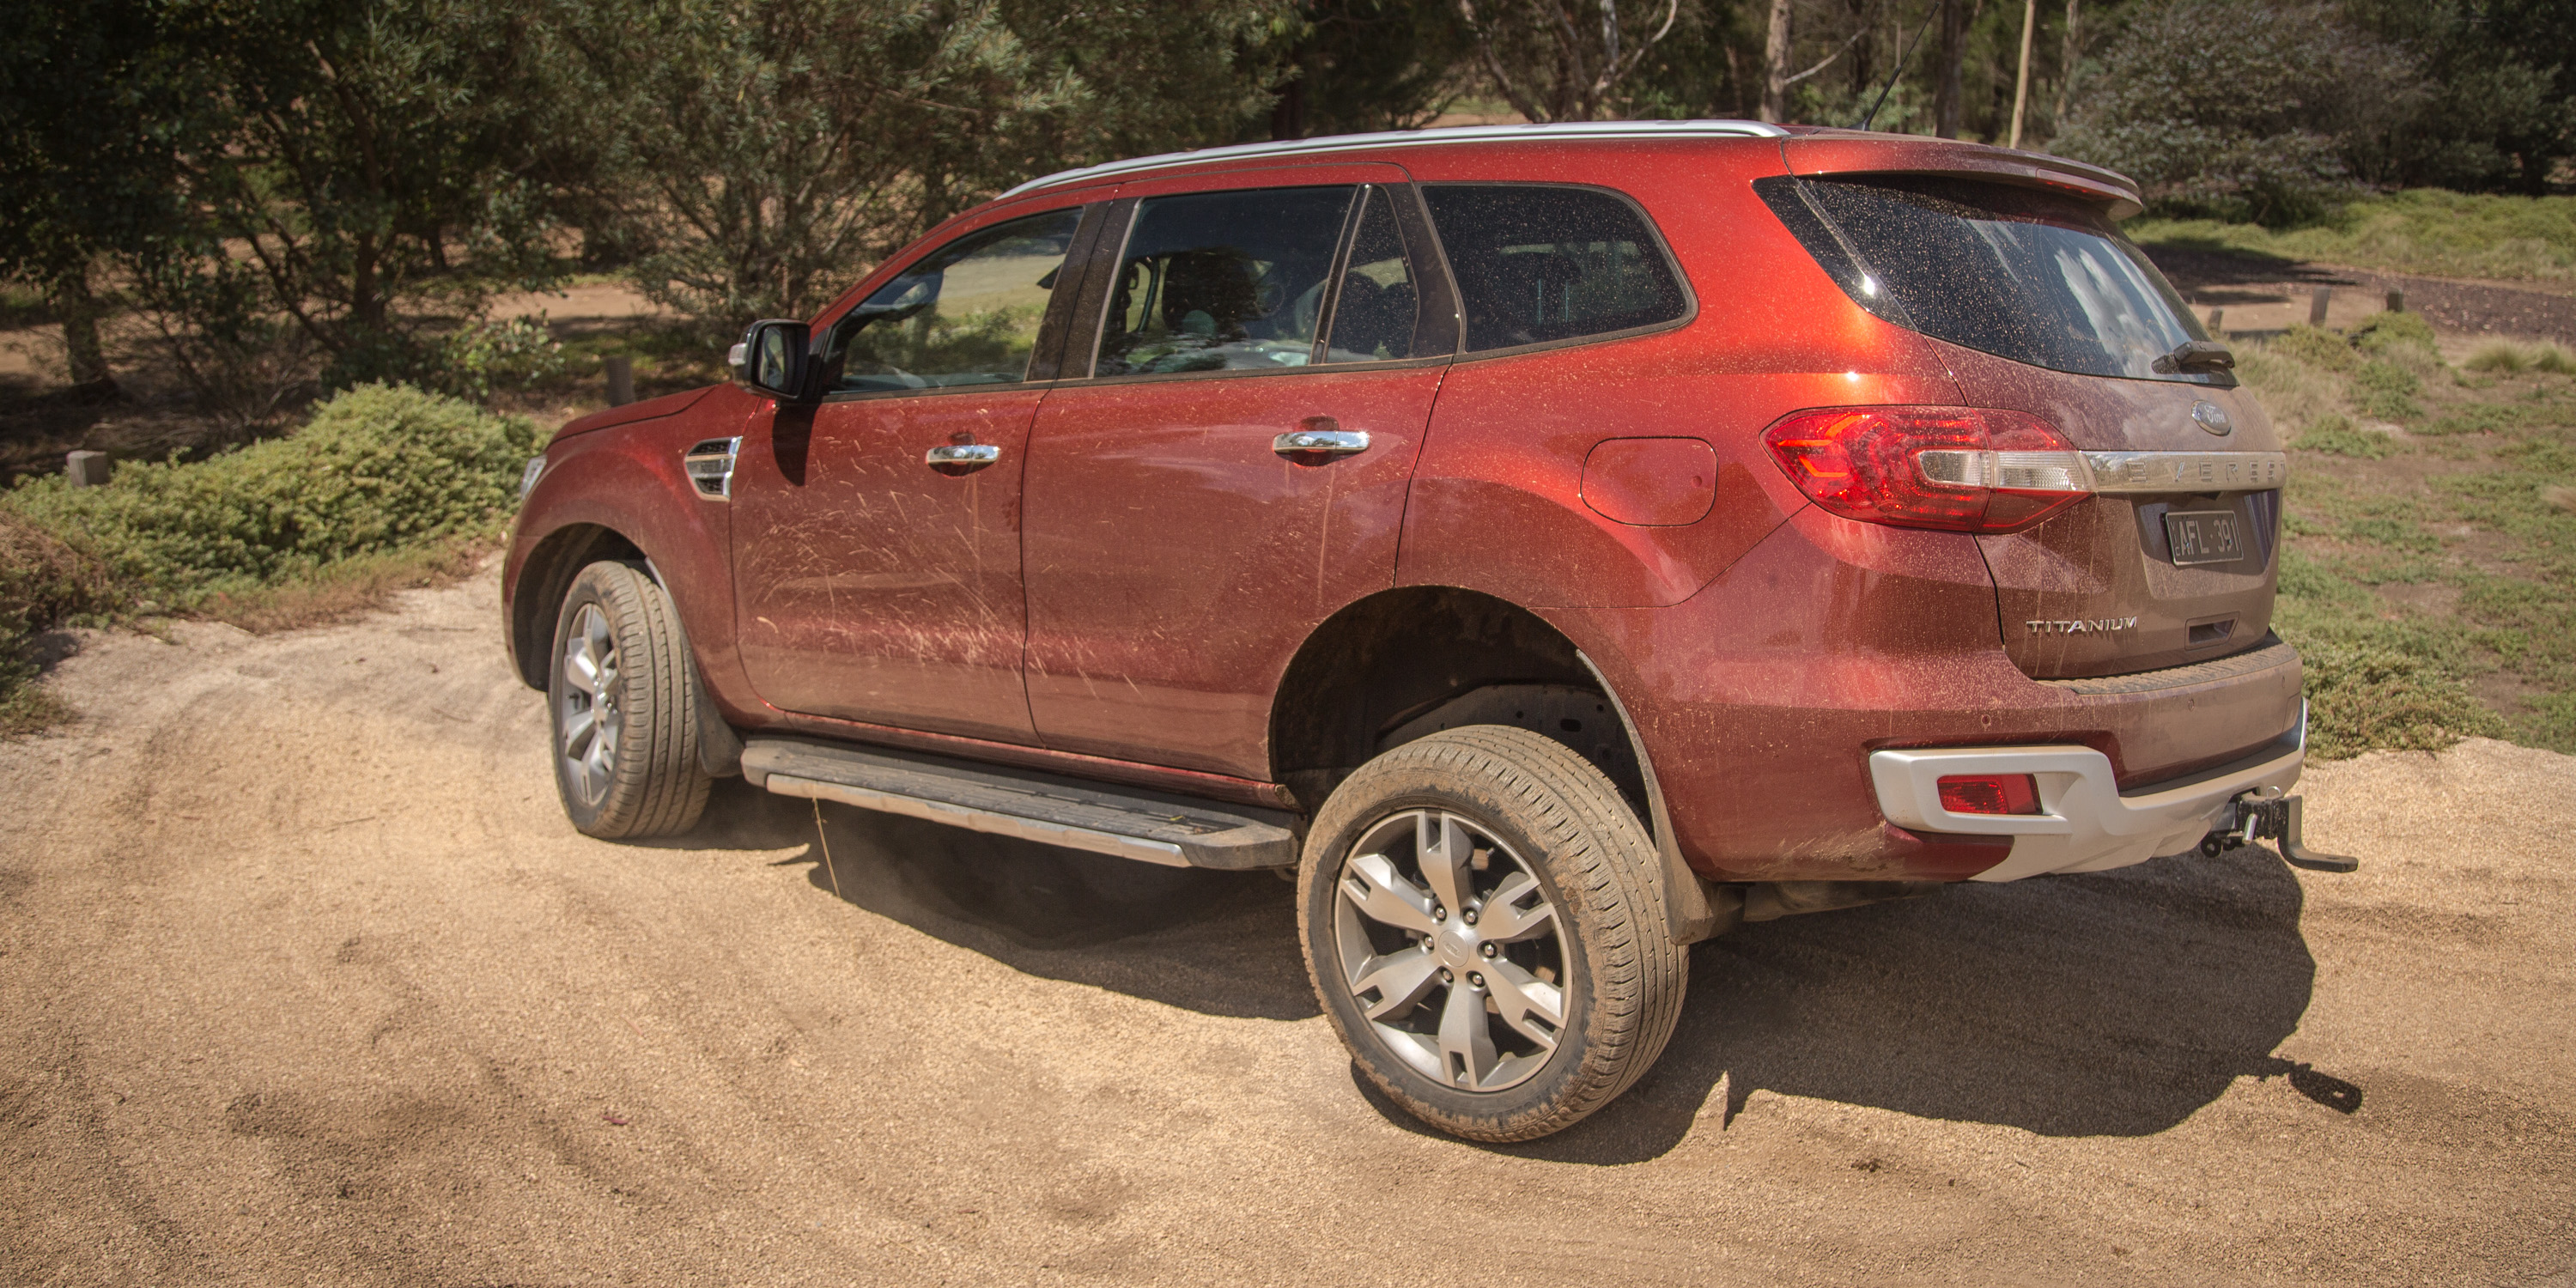 Cars With 4 Wheel Drive Ford Everest Reclassified From Passenger Vehicle To Four